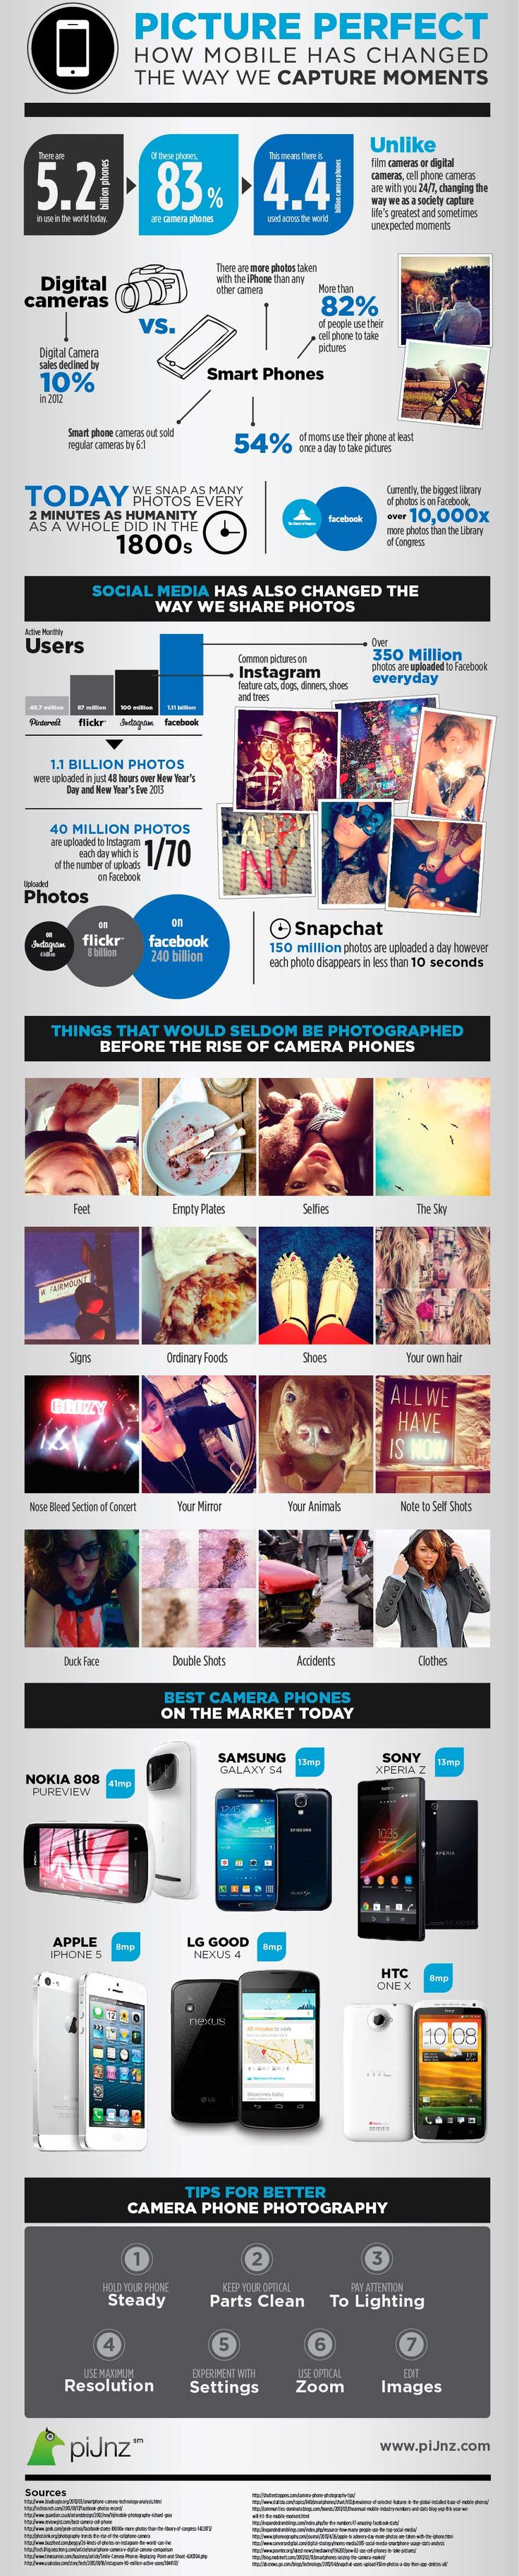 How mobile has changed the way we capture moments #infographic